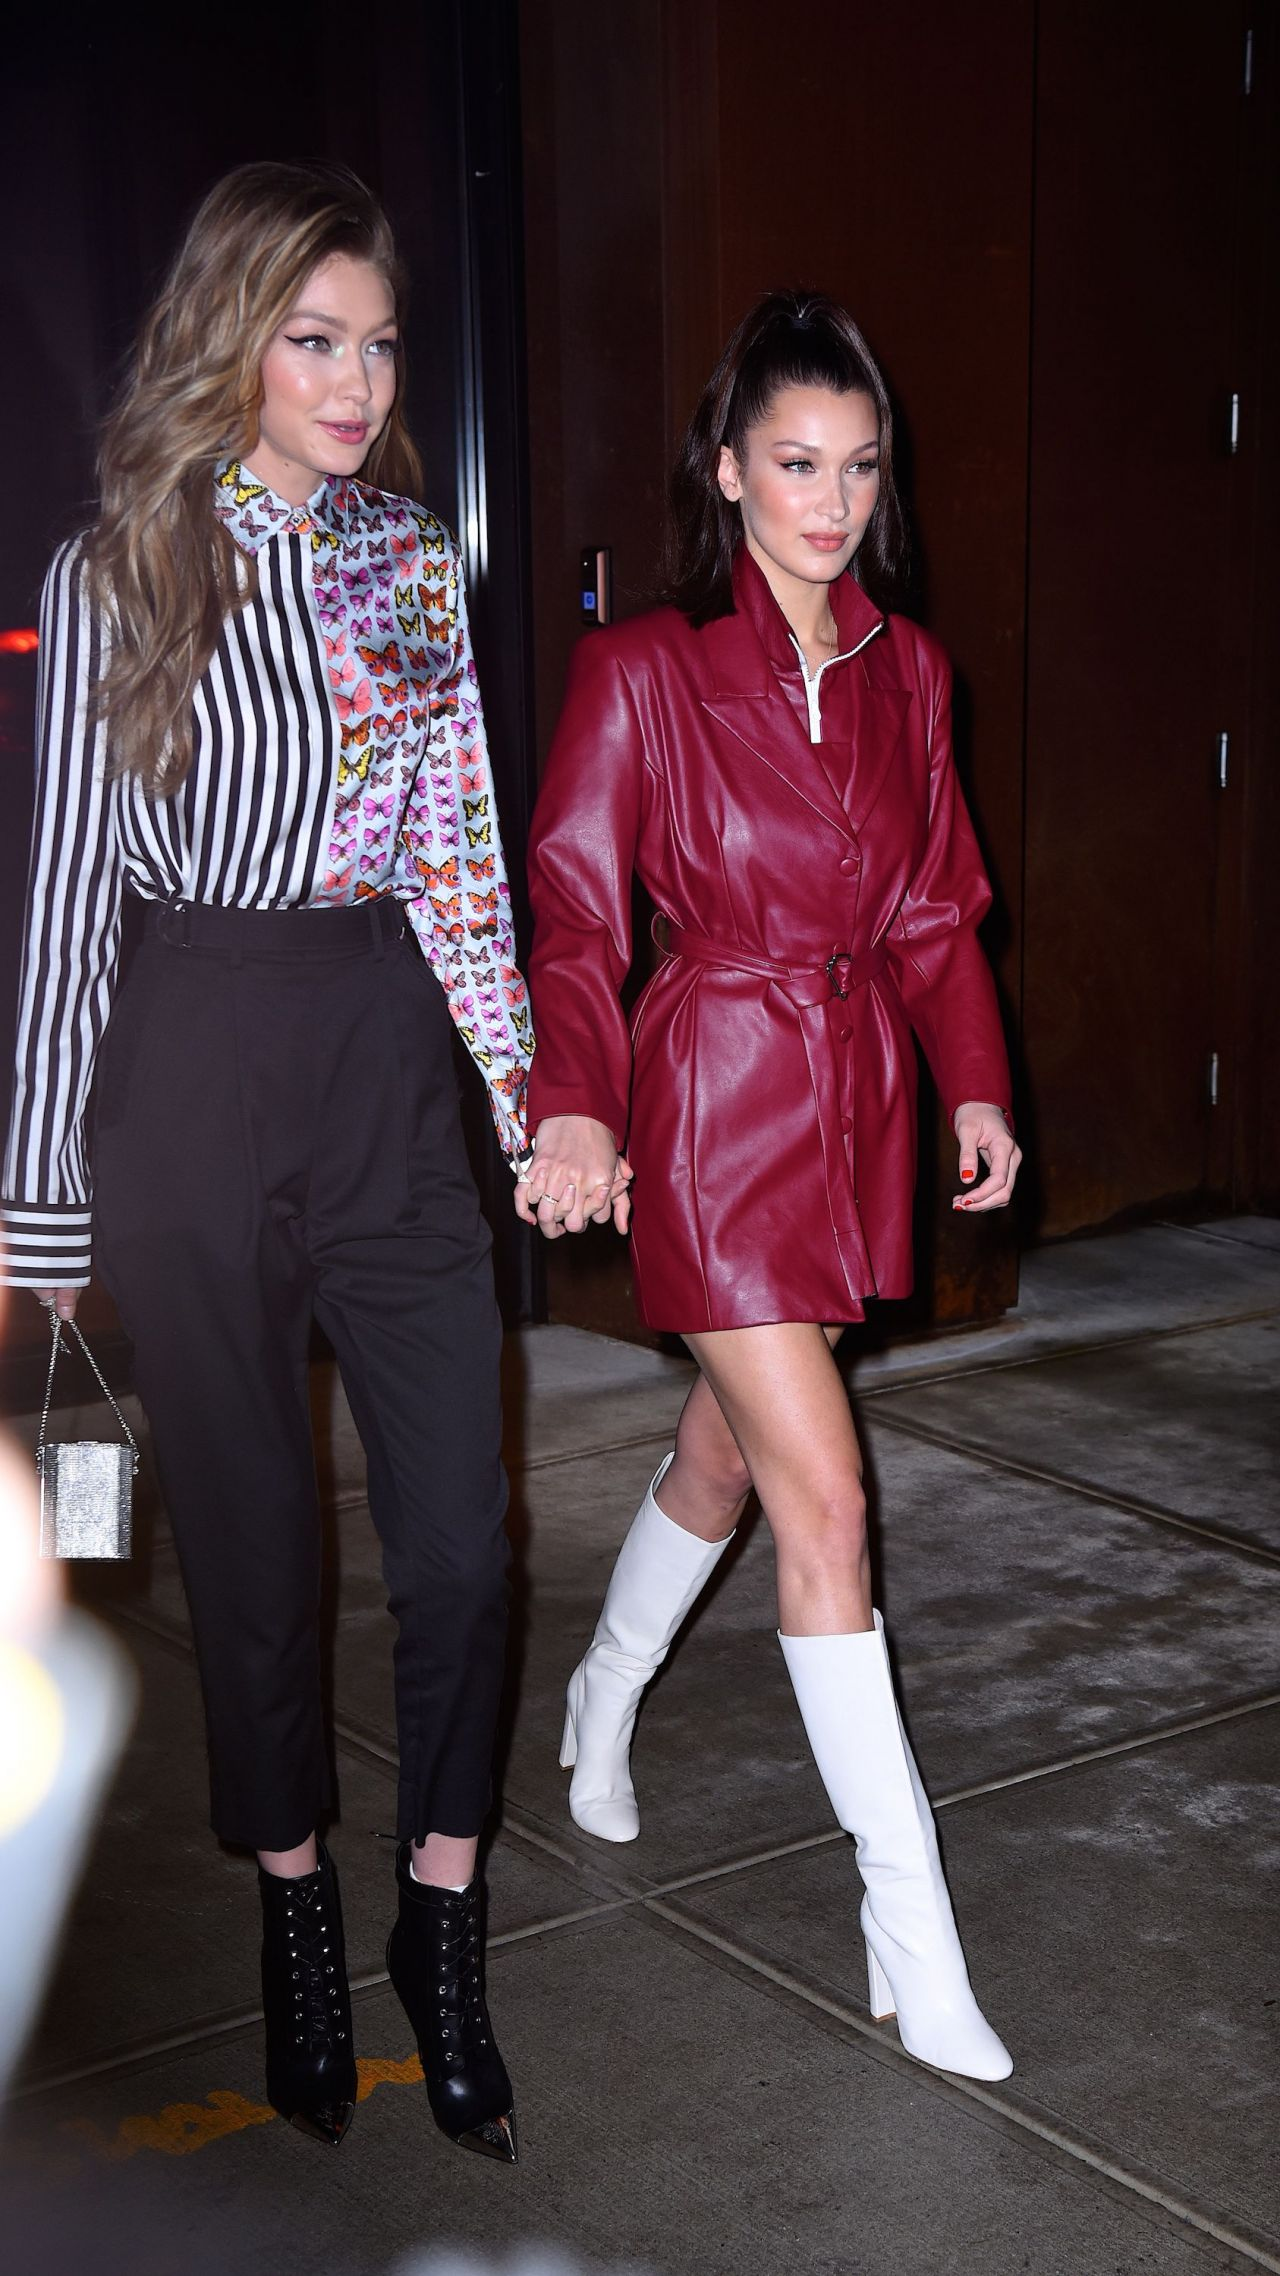 Bella Hadid And Gigi Hadid Out In New York City 01 11 2018